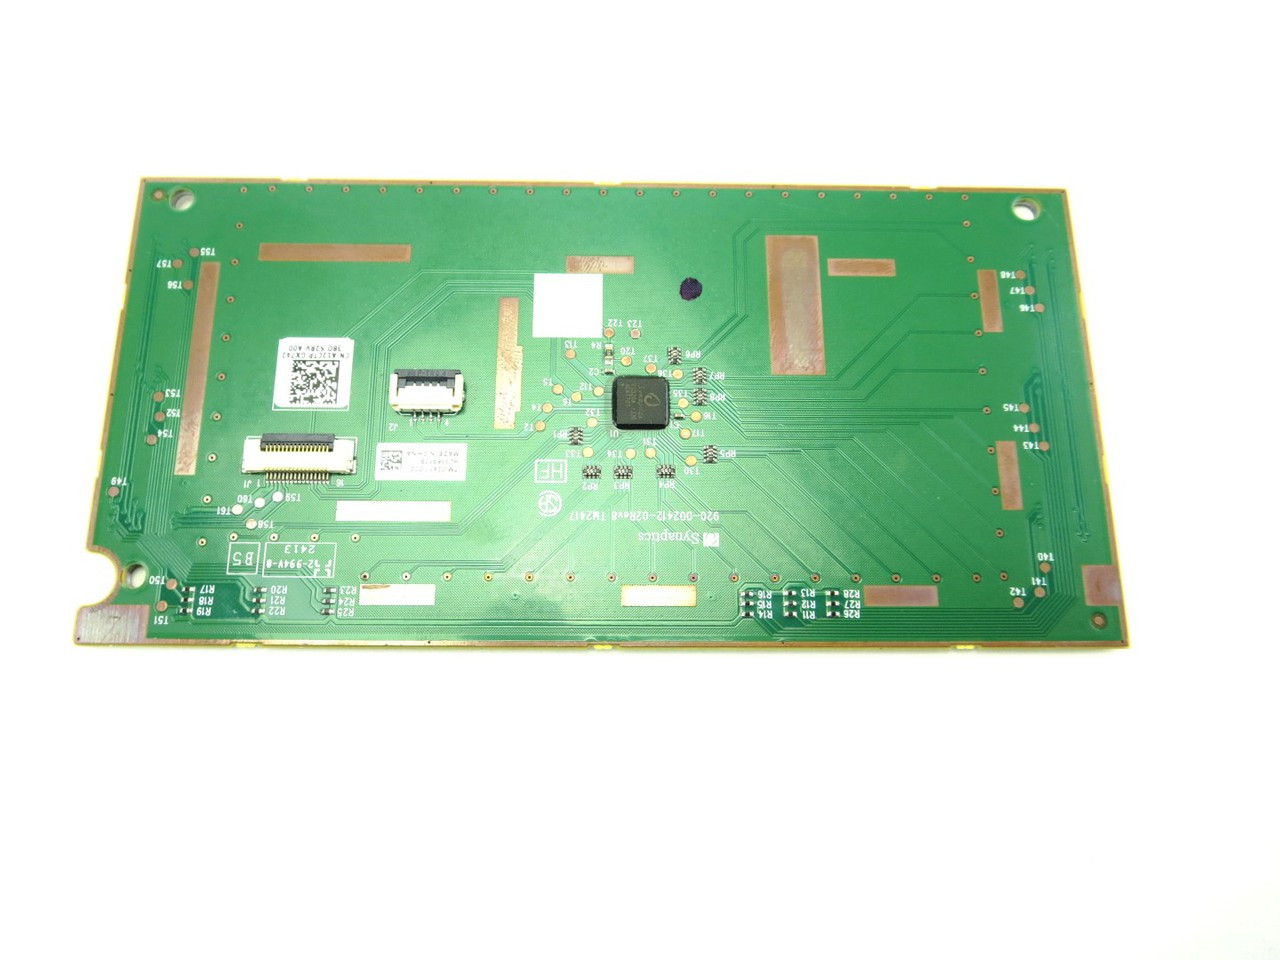 Alienware 14 R1 / Alienware 18 R1 Touchpad Circuit Board with LED's - A12CTP